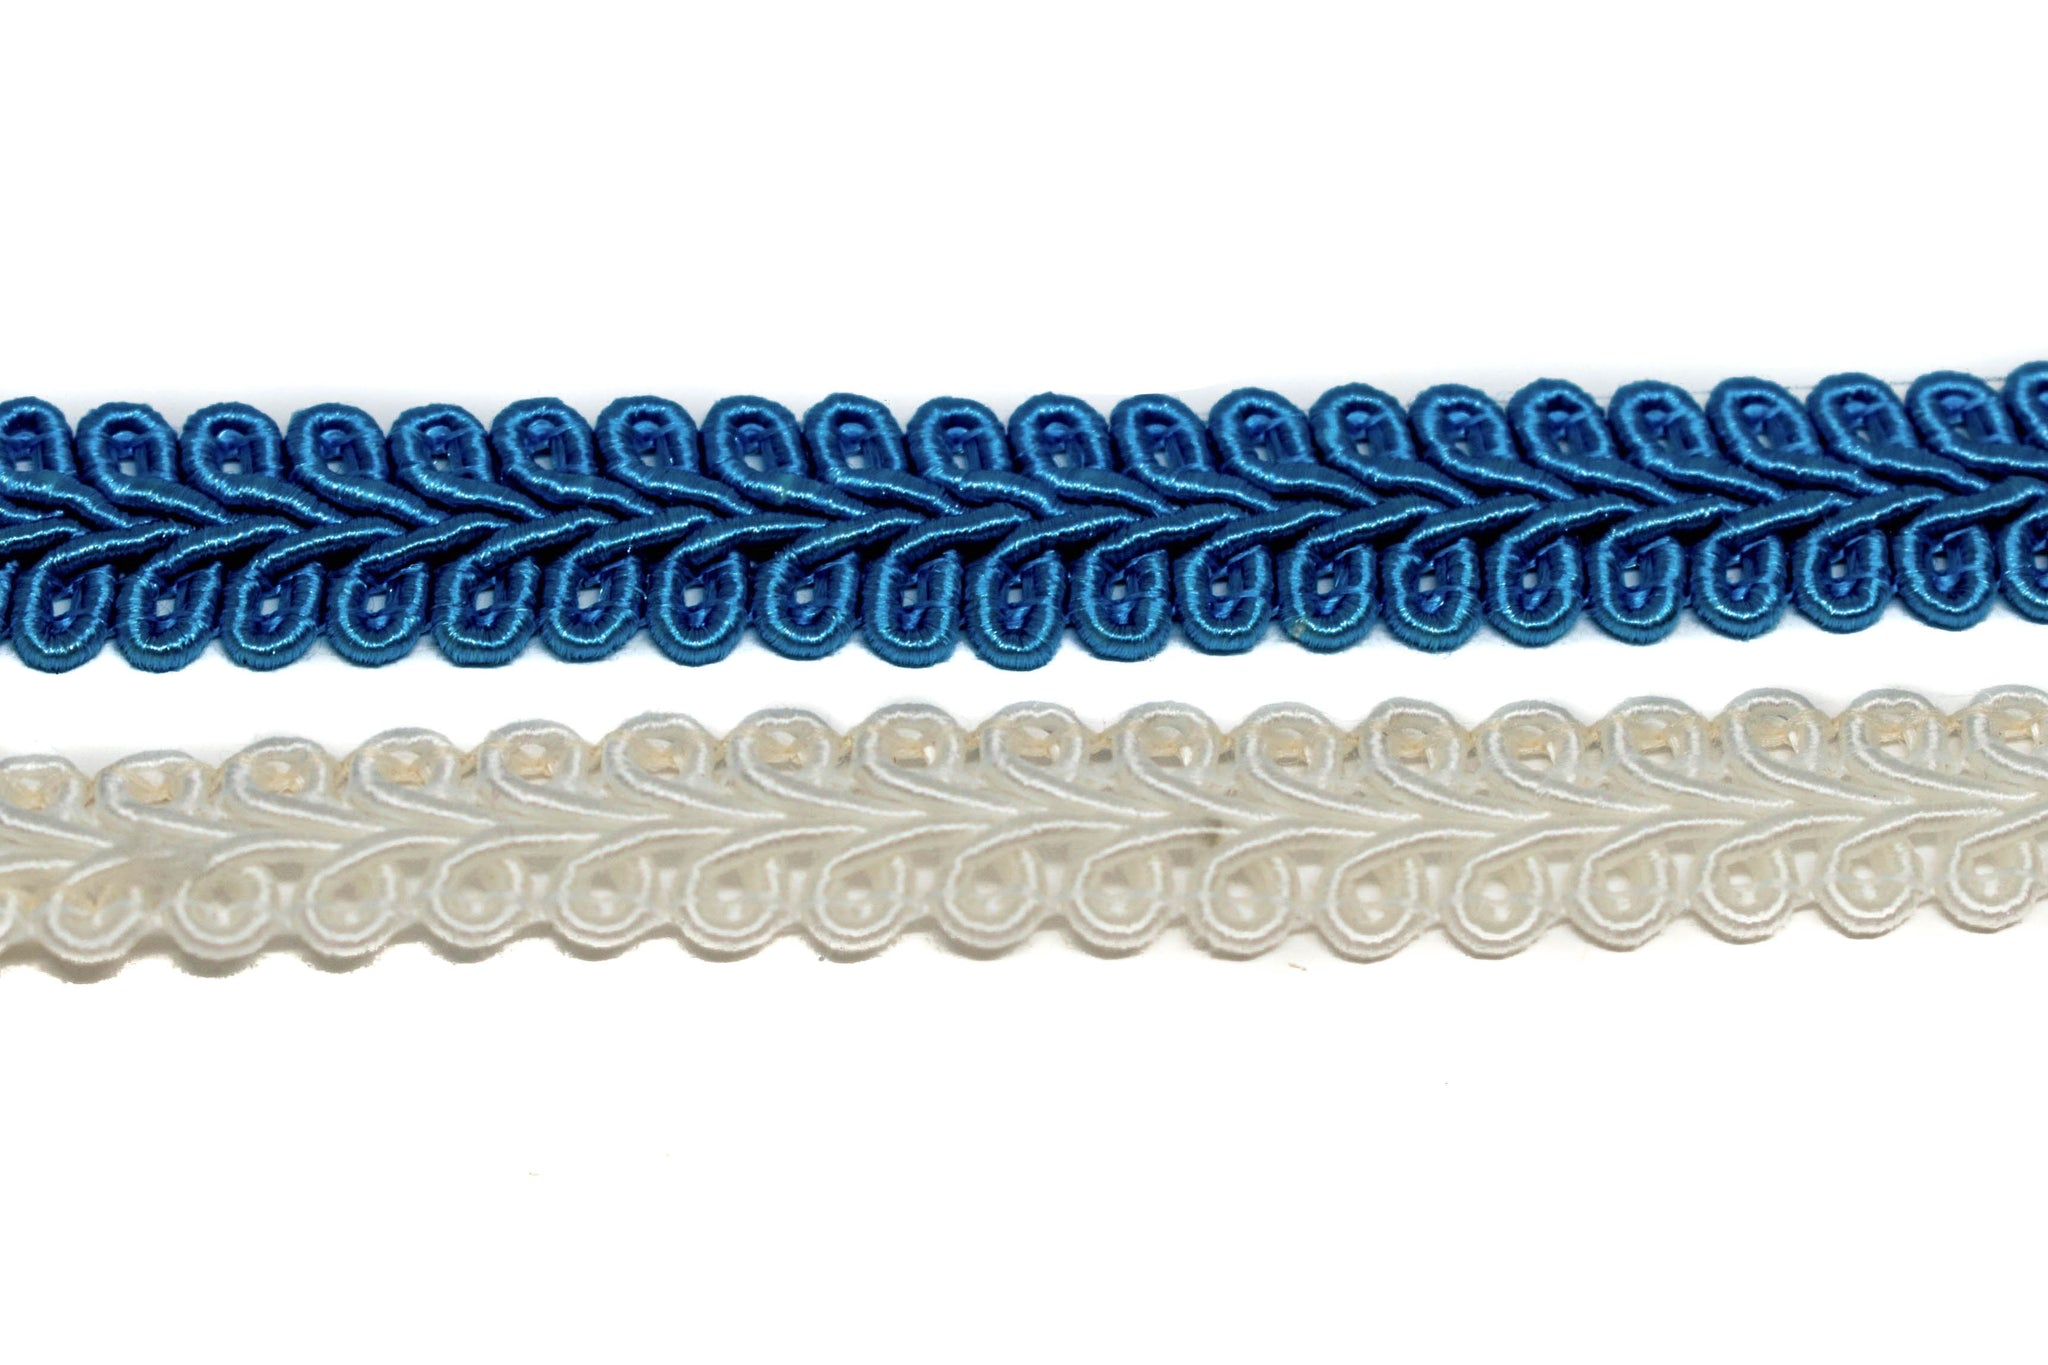 "Ocean Blue OR Pearl White Gimp Trim 5/8"" - 1 Yard"